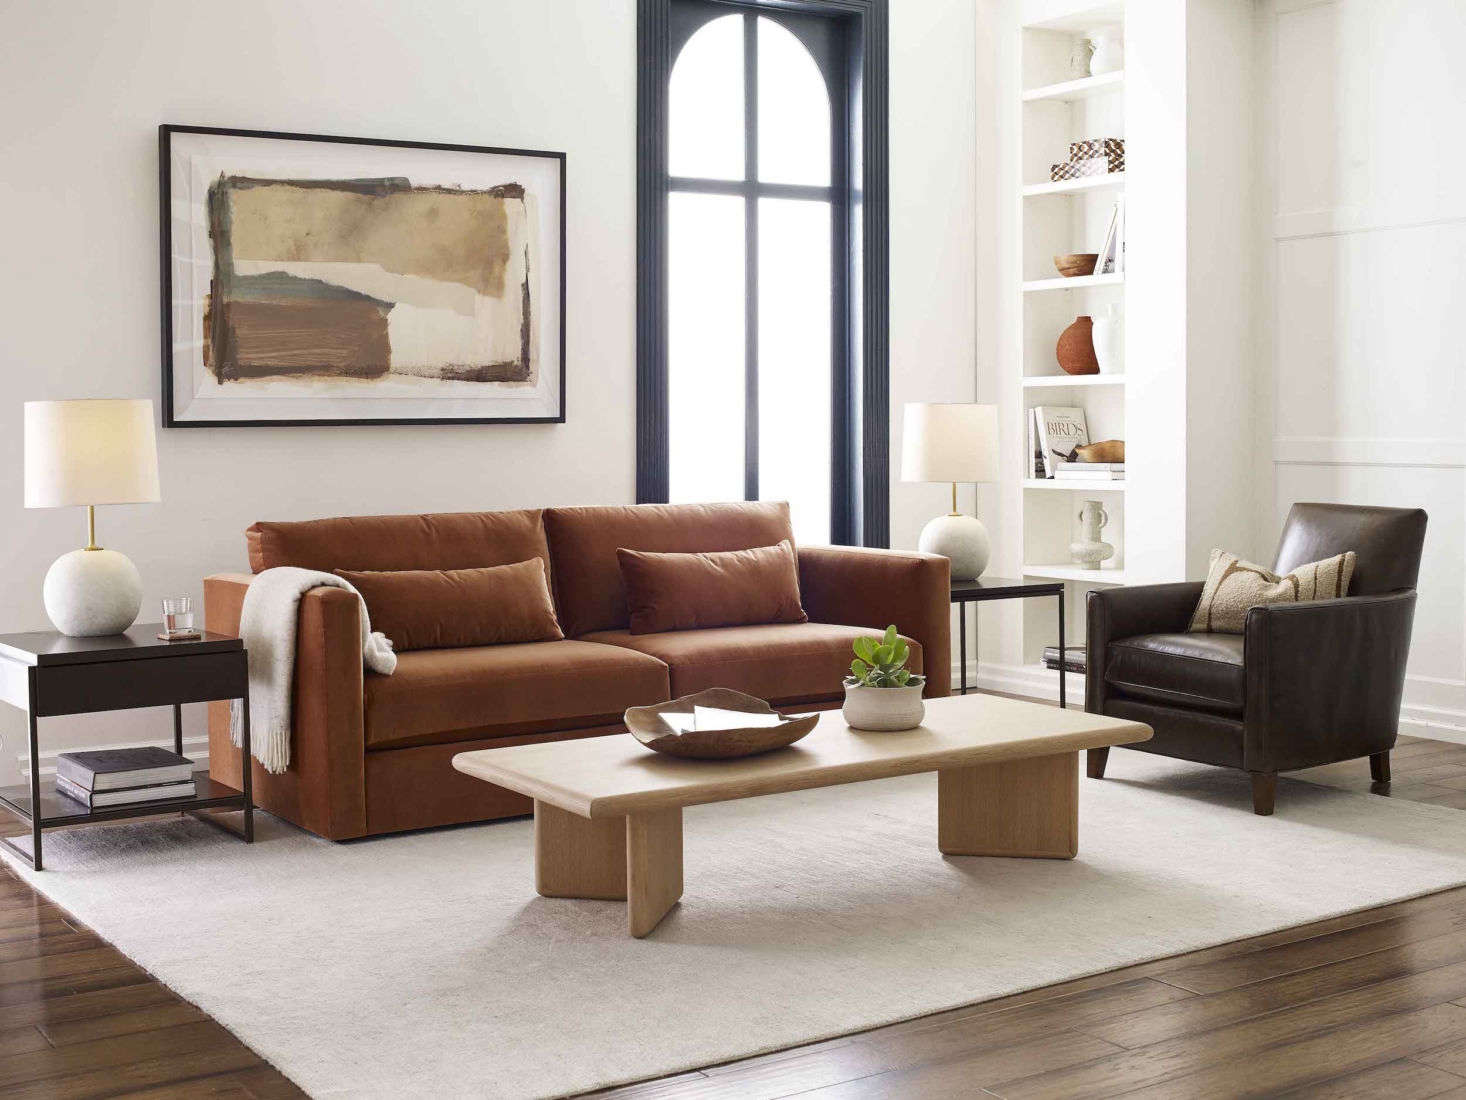 """The Haywood Sofa, shown here in rich """"boulevard auburn,"""" a performance velvet, is equal parts sturdy construction and sumptuous softness, with a low-slung design, hypoallergenic down-alternative back cushions, and """"sink-in style."""" Alongside is the Aiden Leather Chair, a standout of the MG+BW Classics Collection, a limited-edition re-release of some of the company's most iconic pieces from the past 30 years, and the Danish modern-inspired Merritt Cocktail Table."""